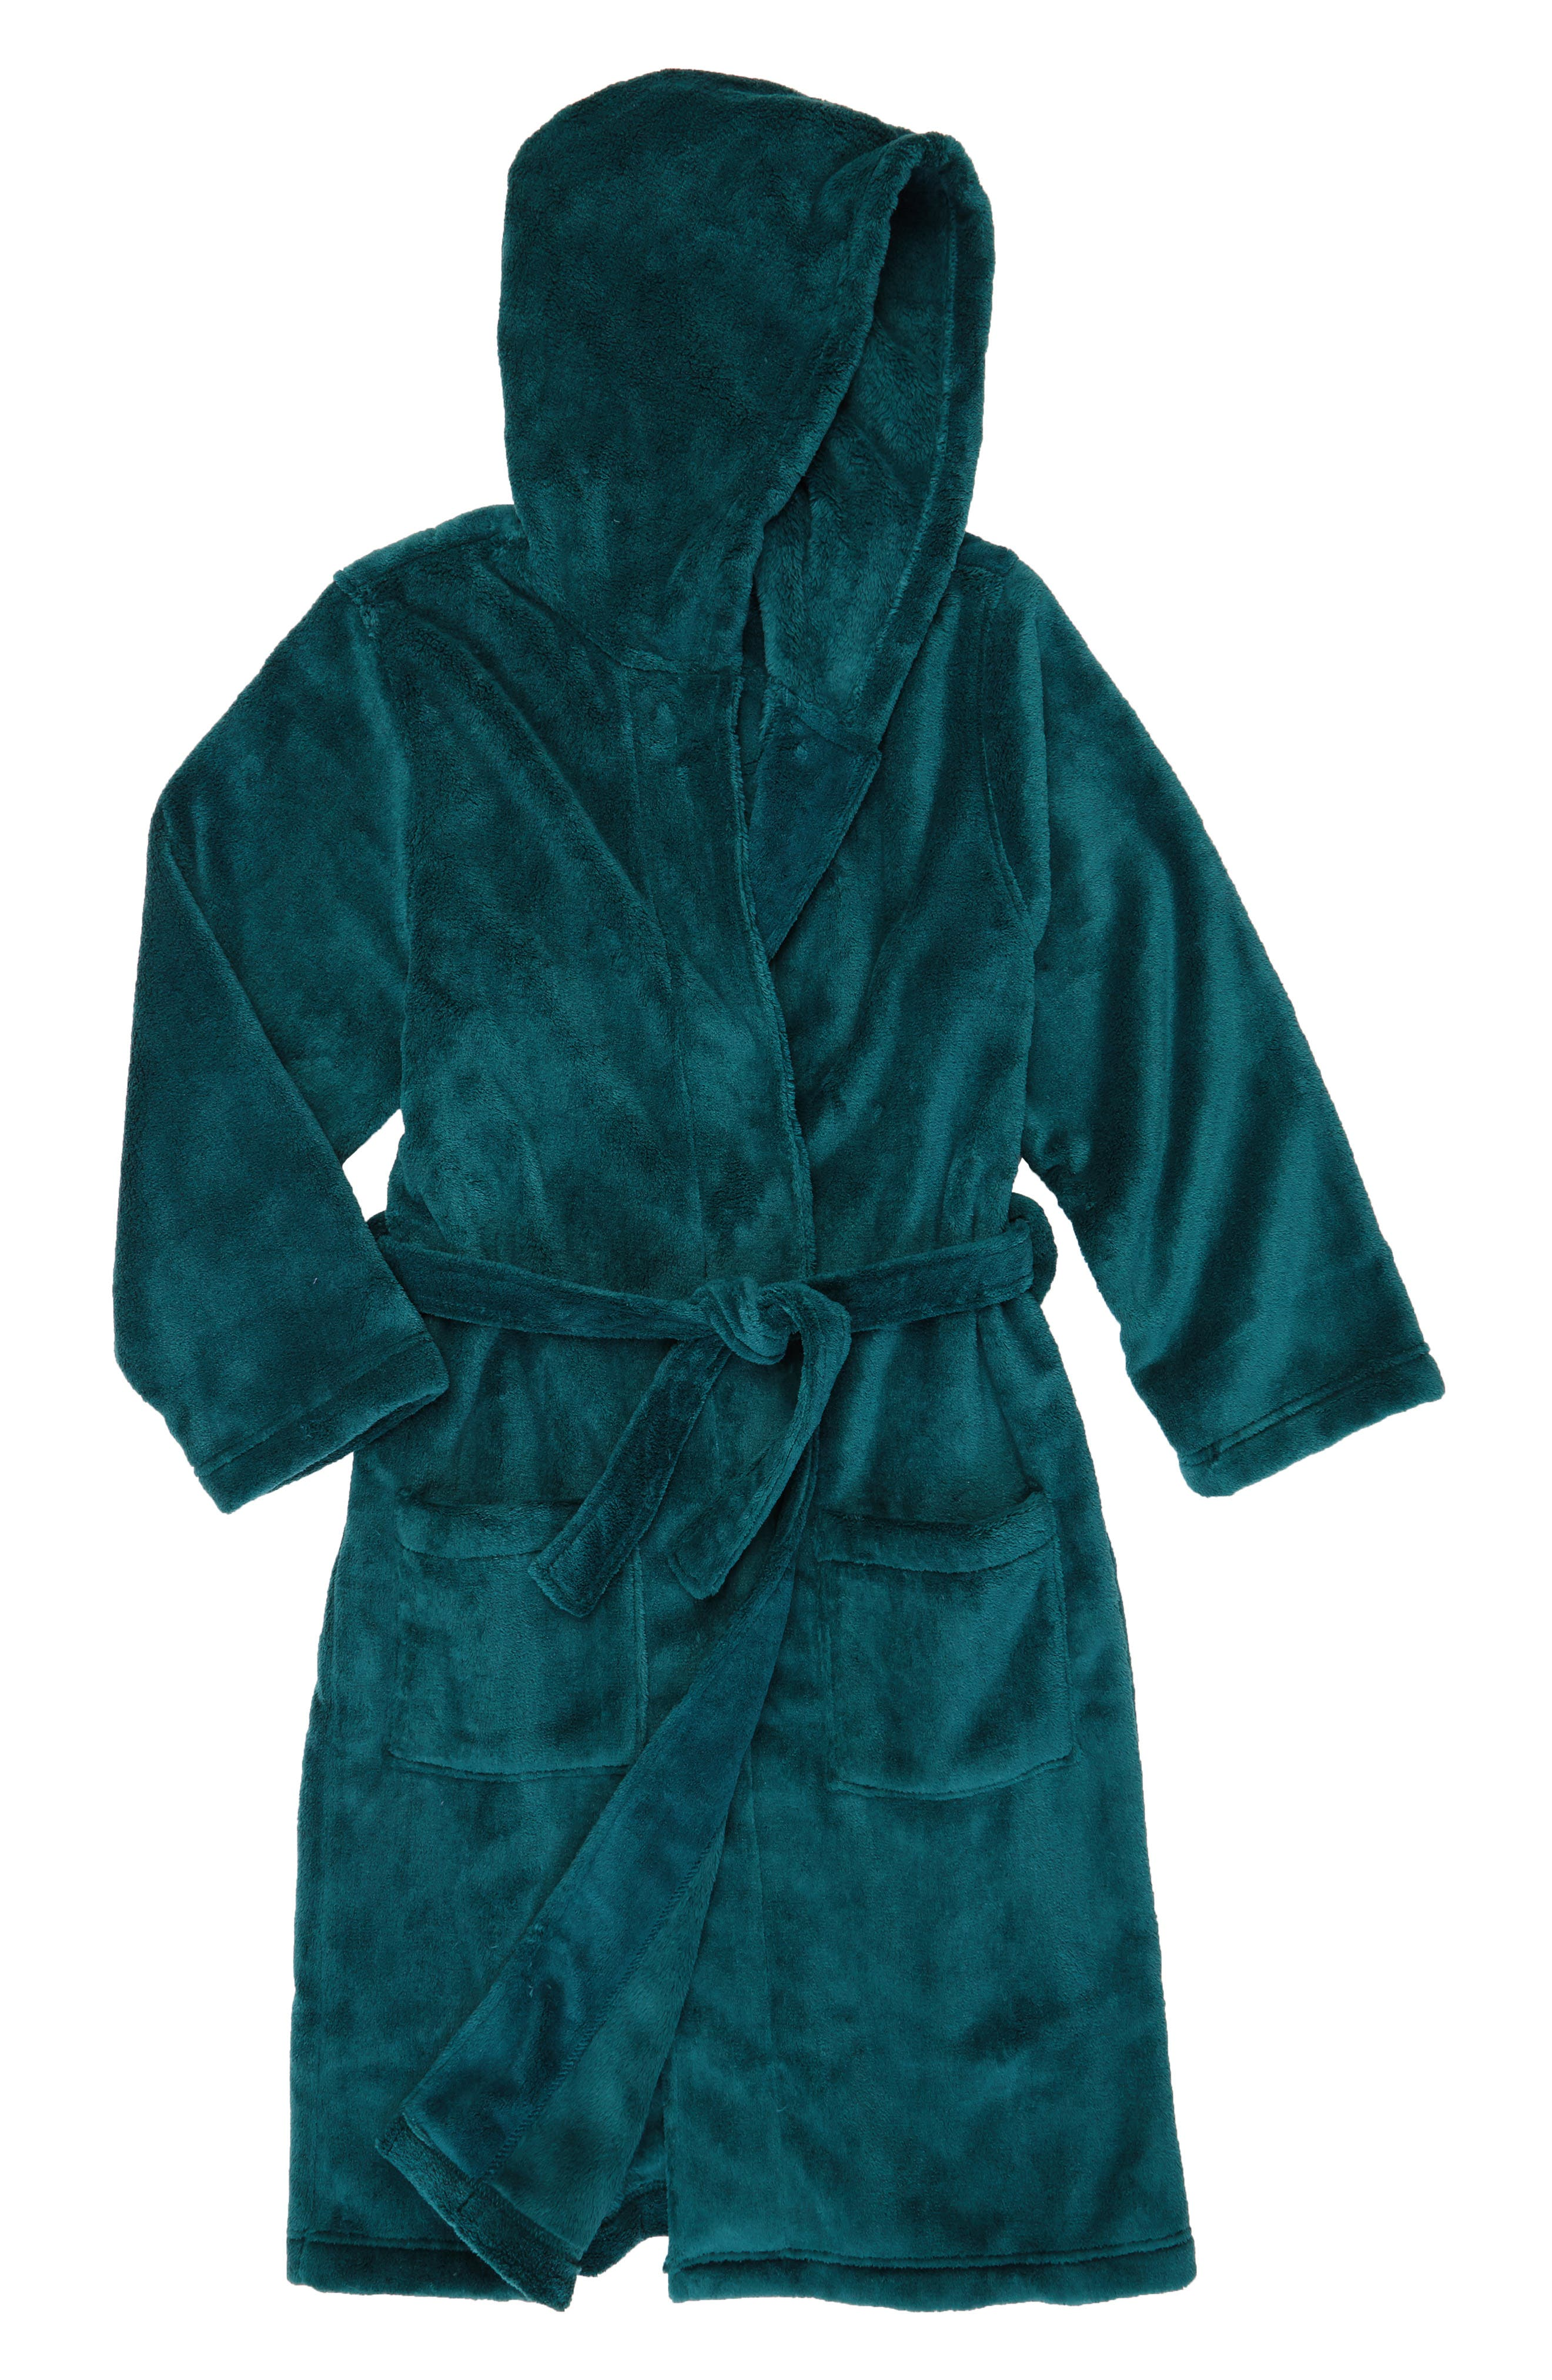 Tucker + Tate Plush Hooded Robe (Toddlers, Little Kids & Big Kids)